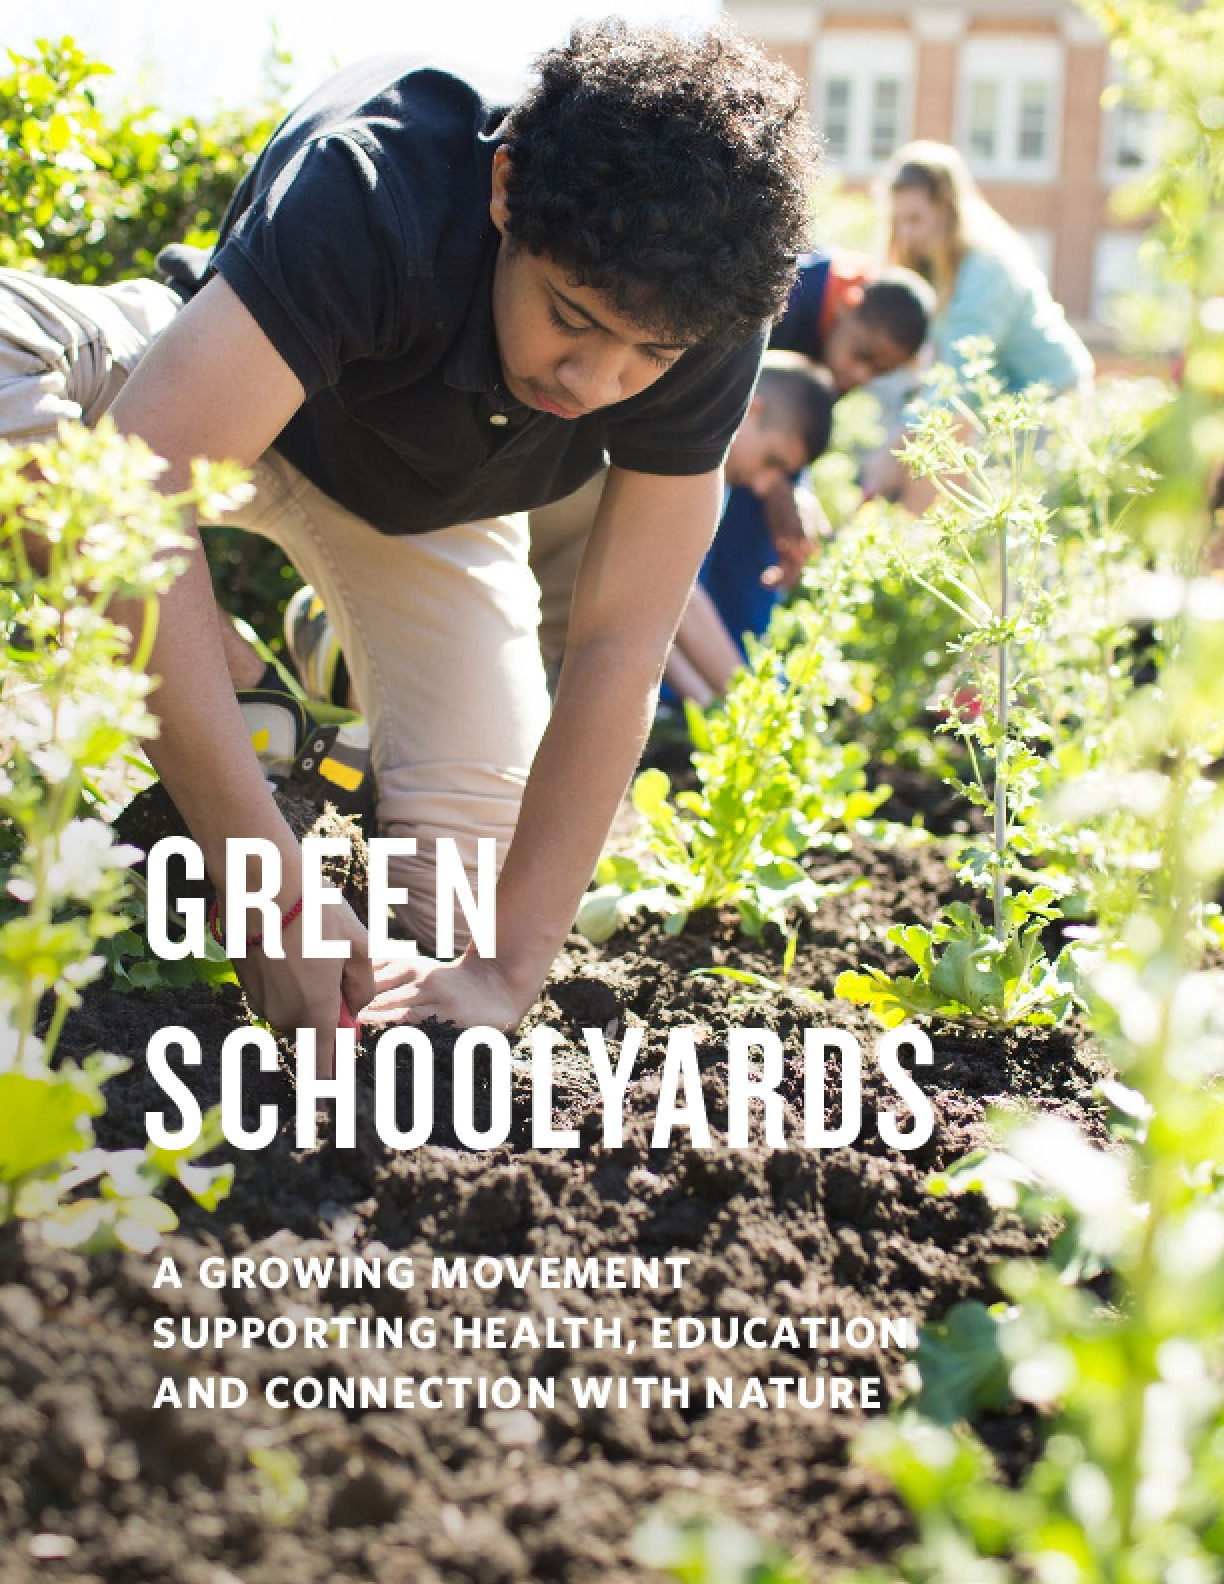 Green Schoolyards: A Growing Movement Supporting Health, Education, and Connection with Nature